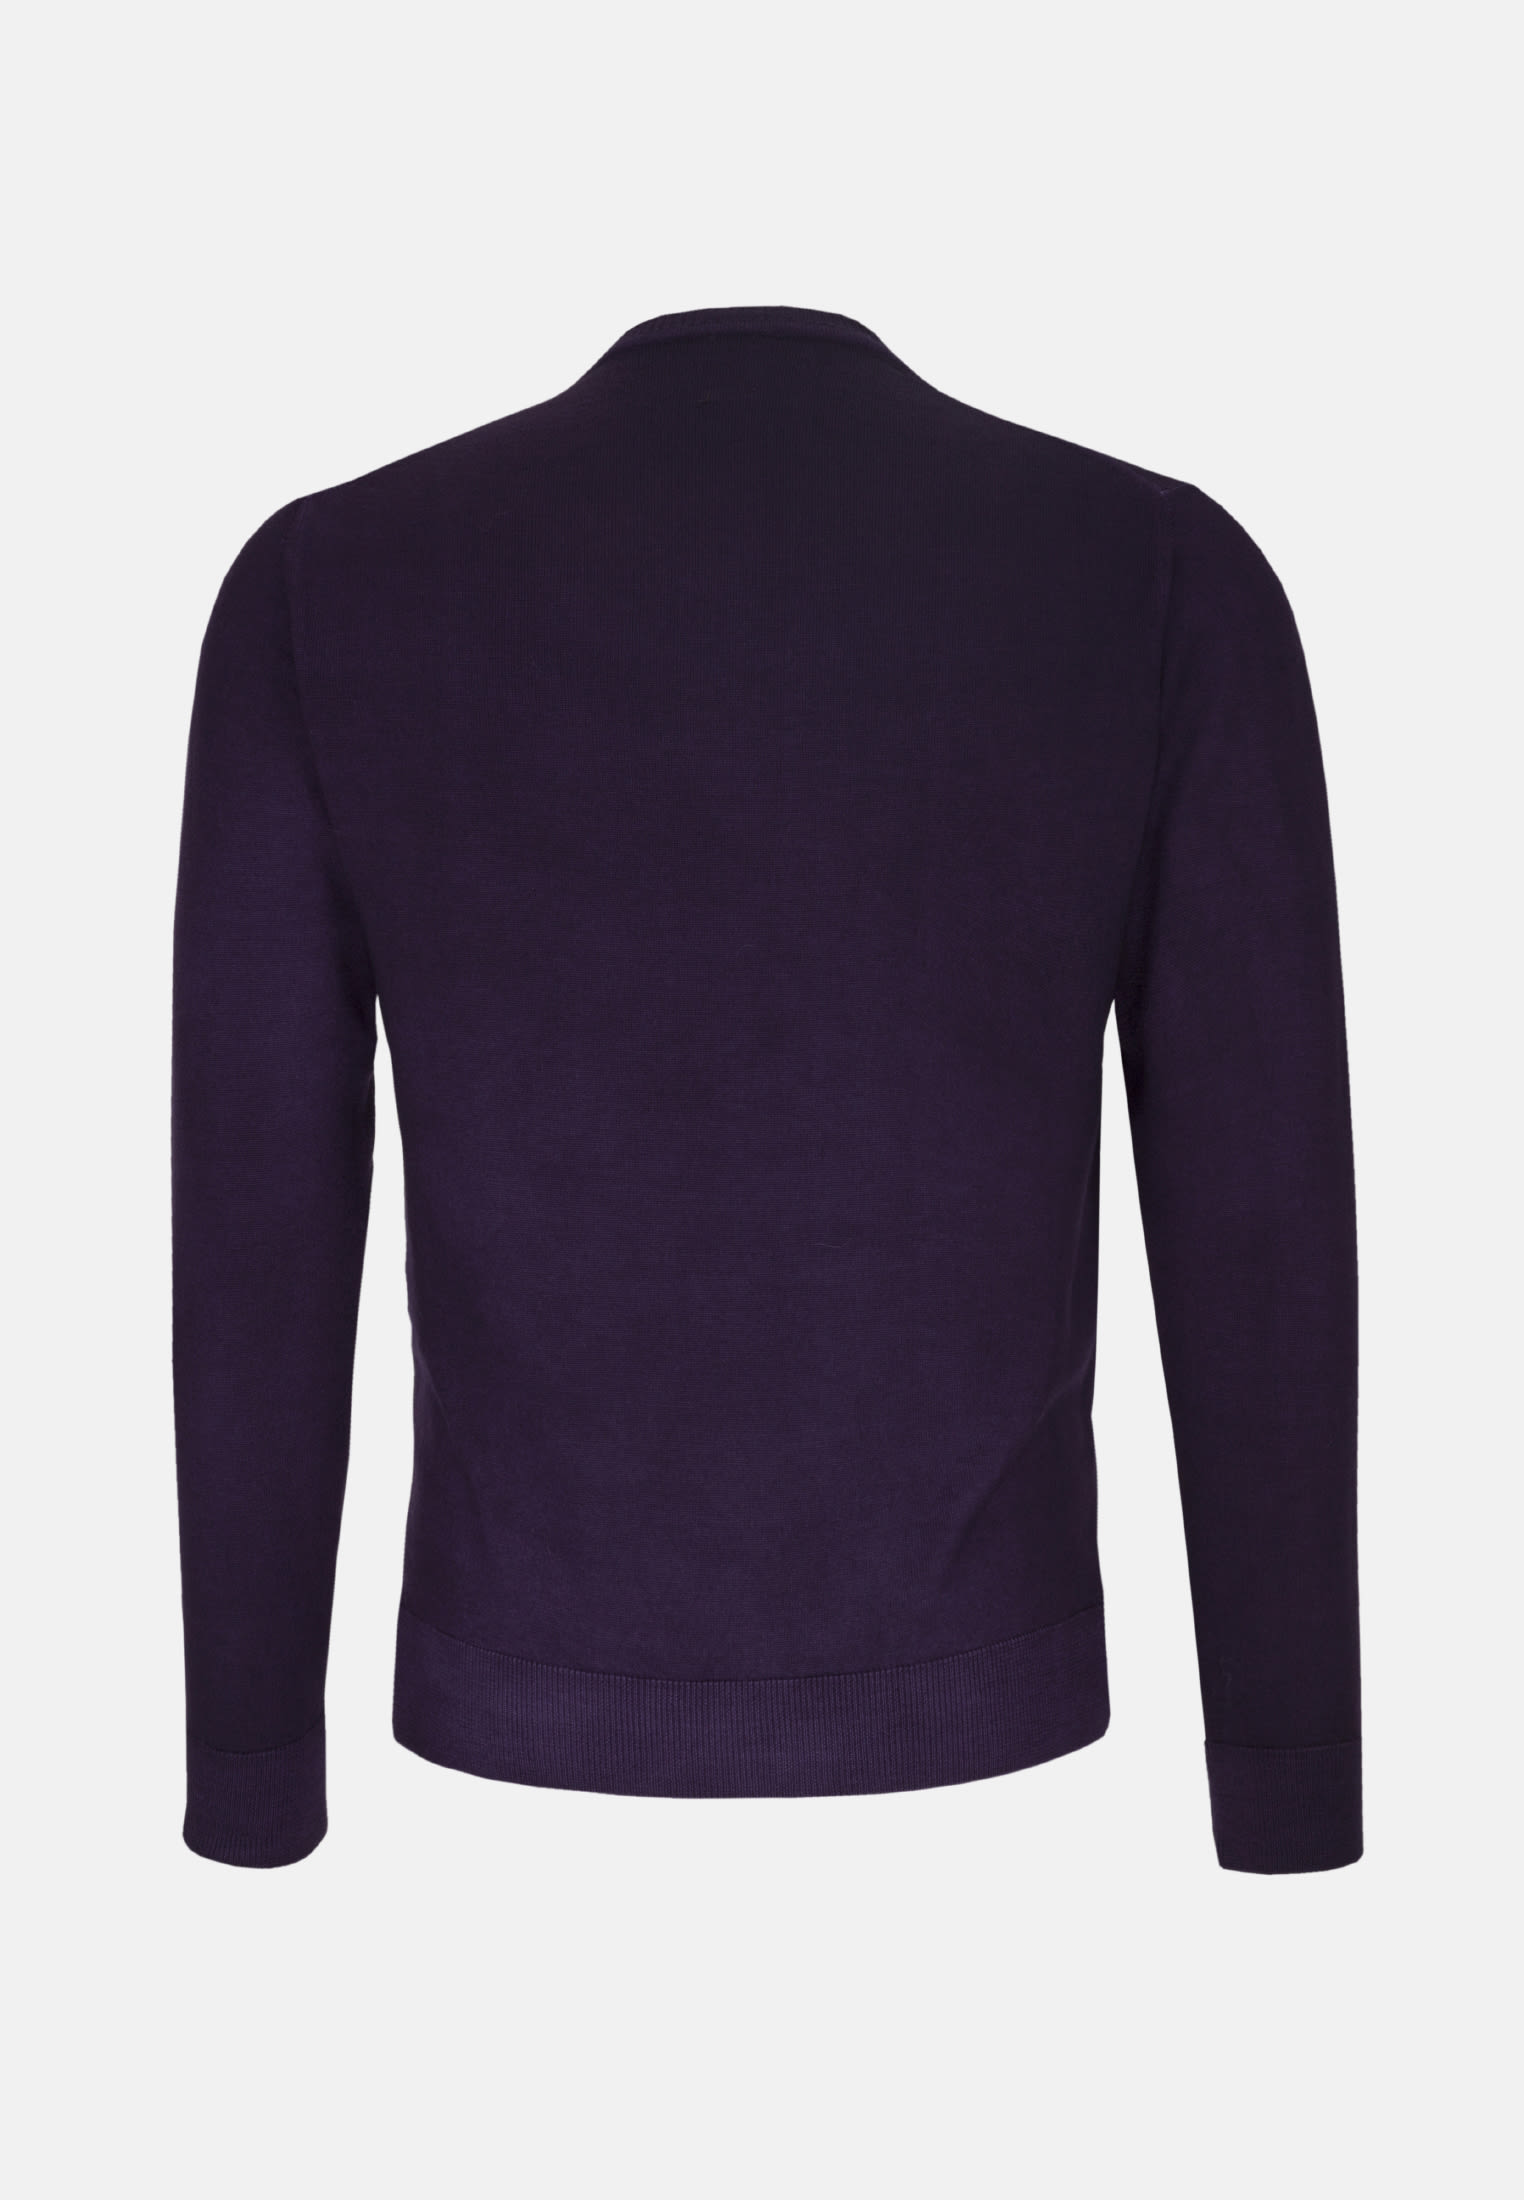 Rundhals Pullover aus 100% Merino-Wolle in Lila |  Jacques Britt Onlineshop